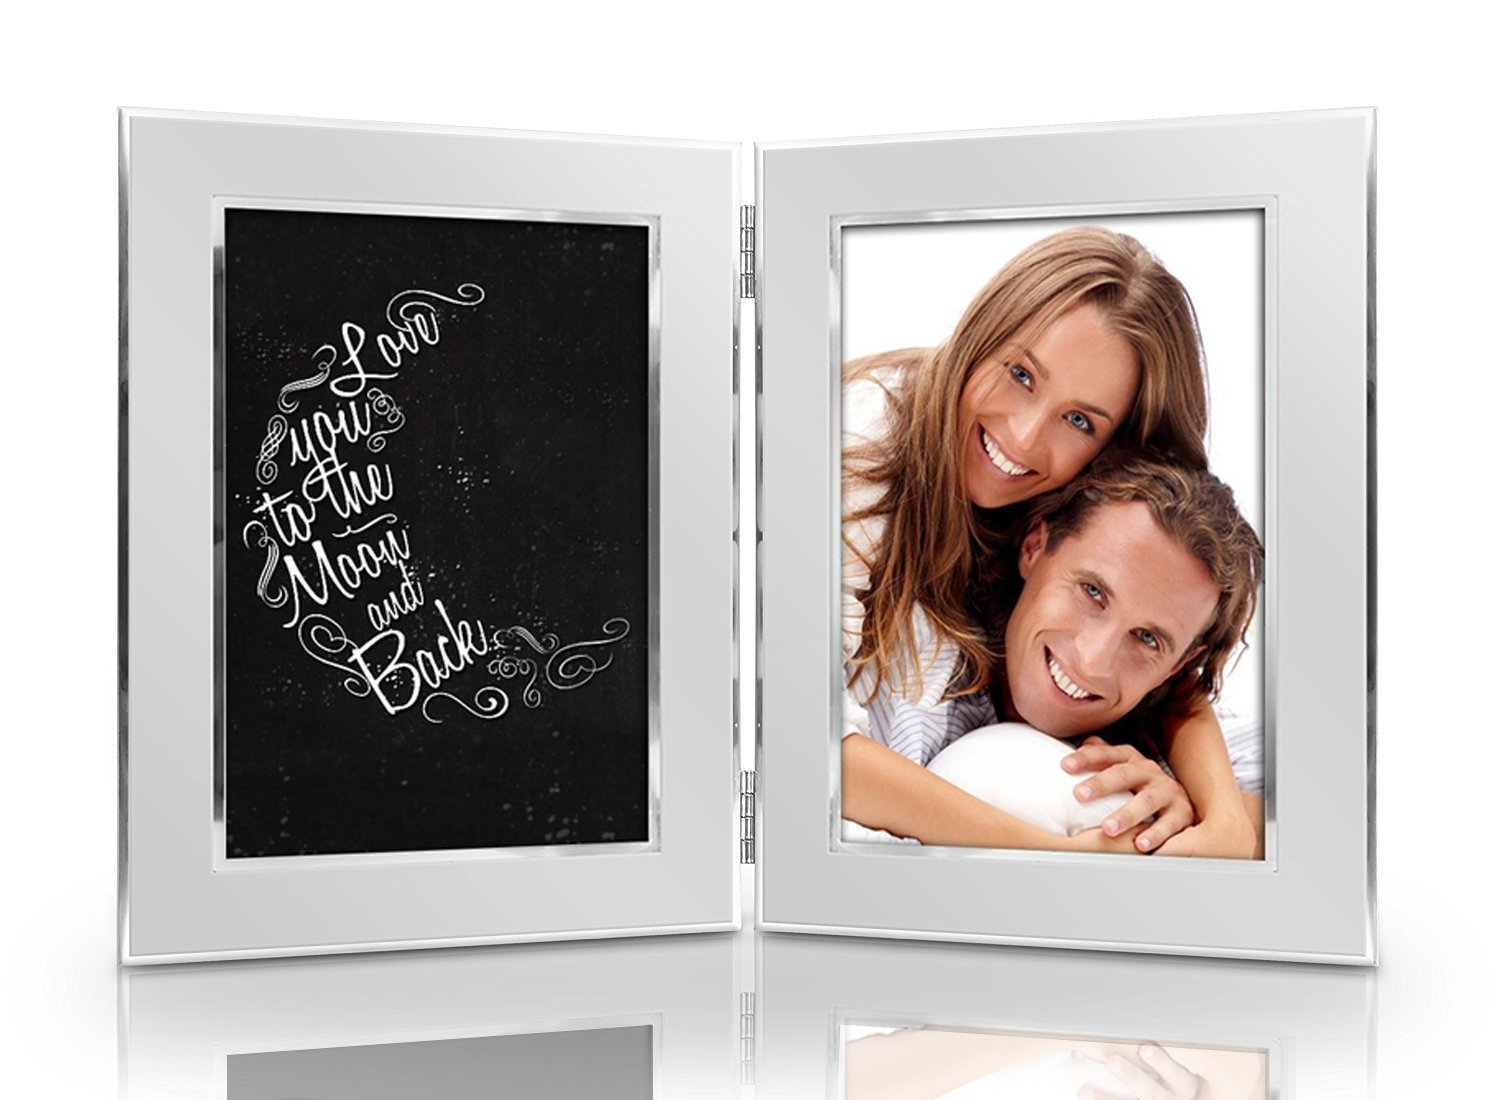 Love You To The Moon And Back Picture Frame Set - Premium Double Hinged Photo Frames - Gift for Dad, Husband, Grandpa, Men - Perfect Present for His Birthday, Father's Day, Christmas